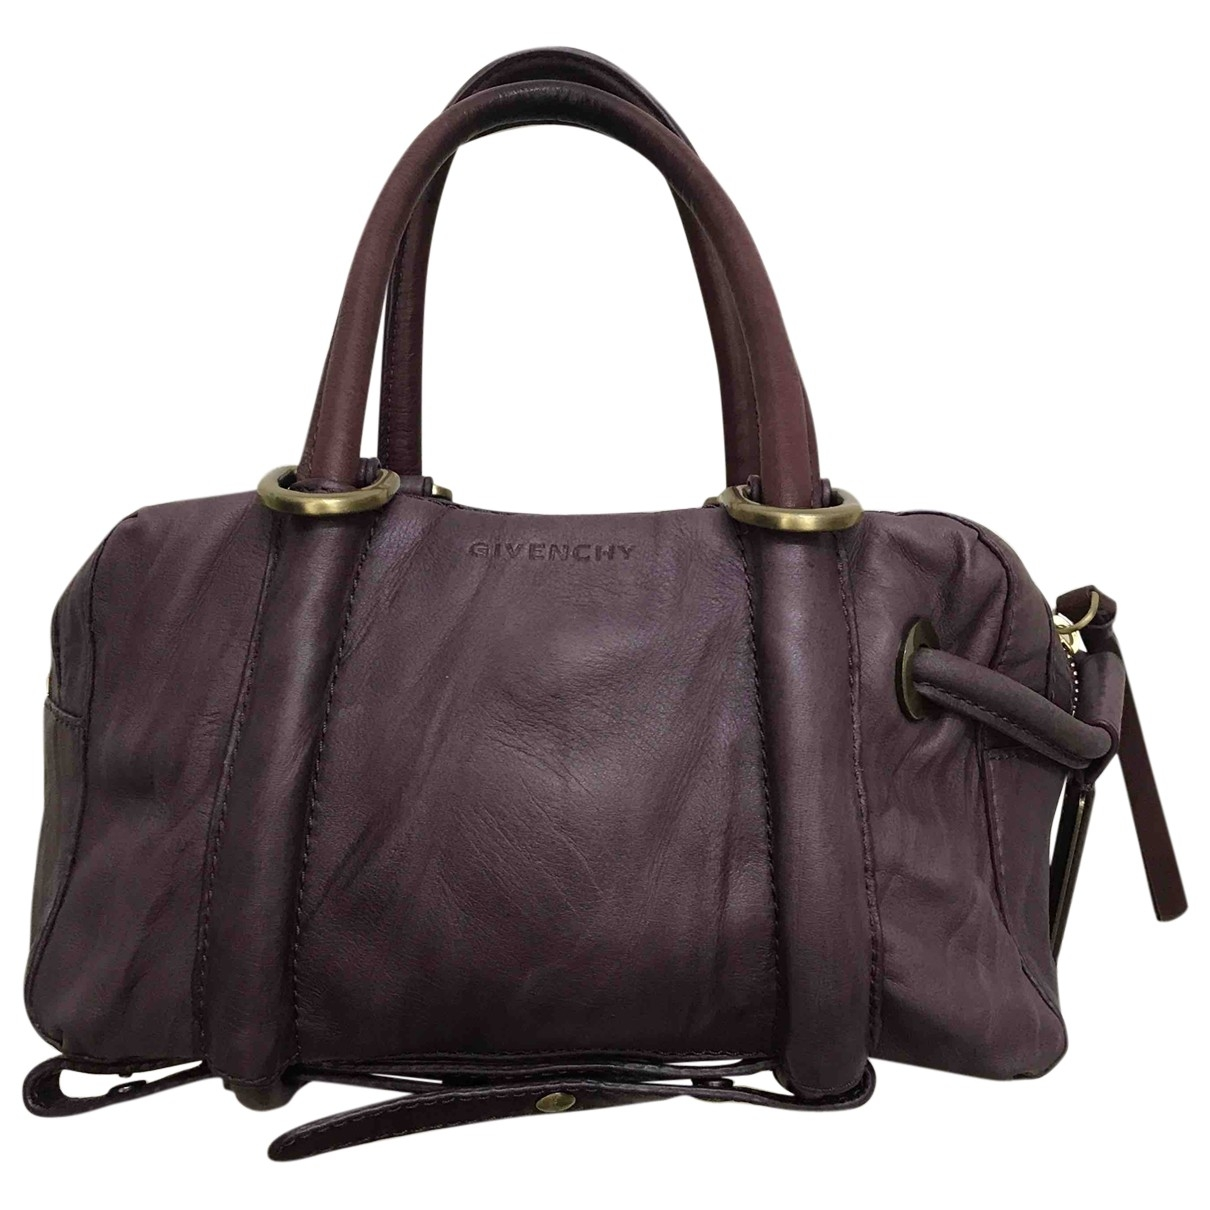 Givenchy \N Purple Leather handbag for Women \N